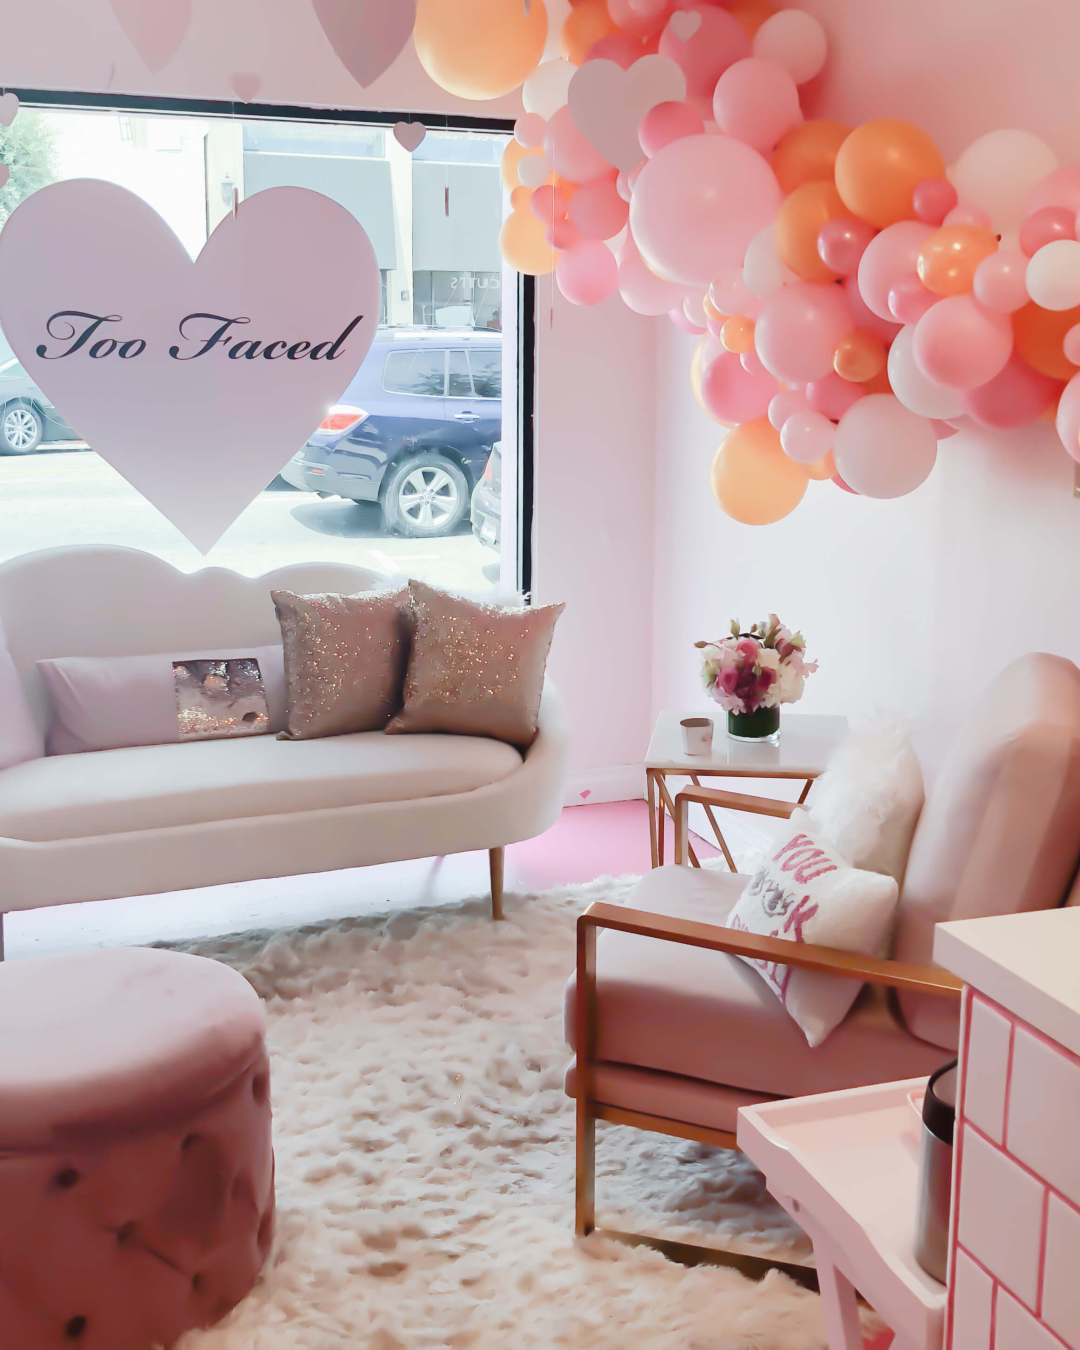 Too Faced Pop-Up | Twinspiration